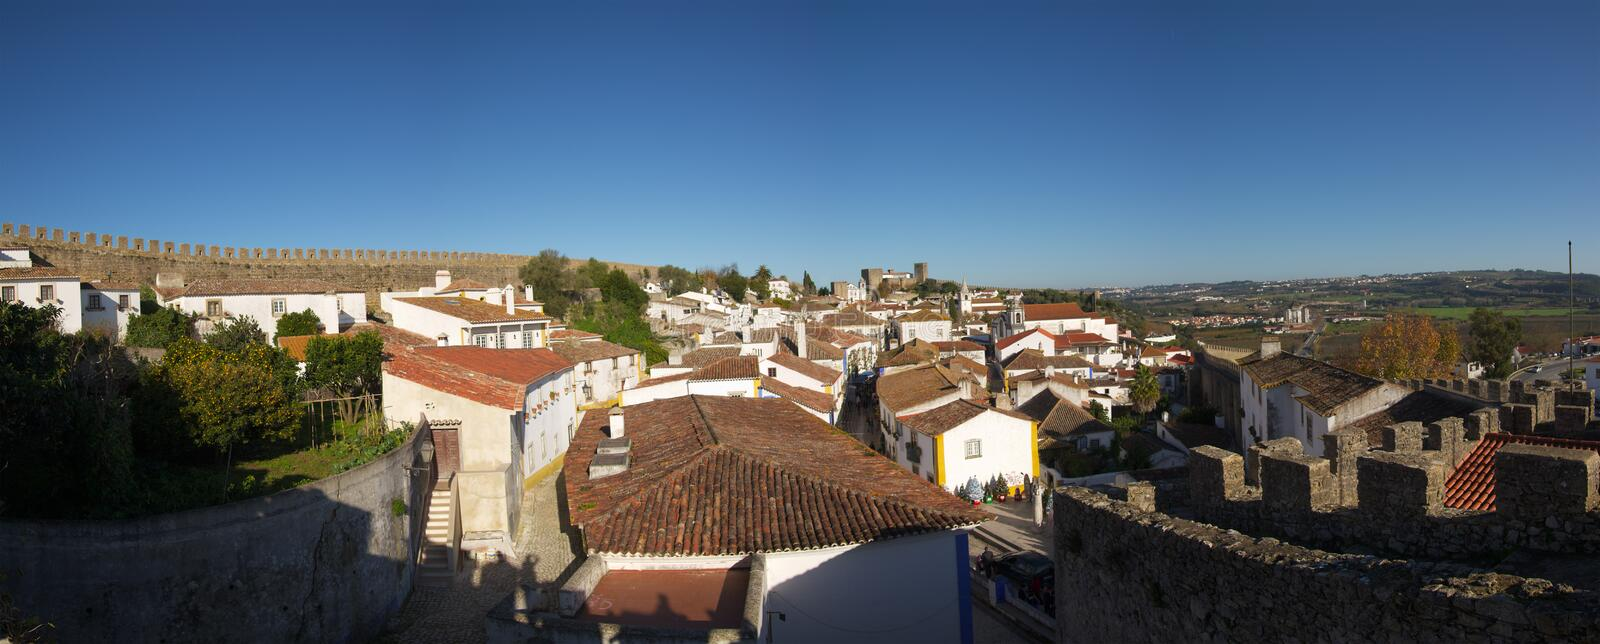 Panorama of the walled town of Óbidos stock photography